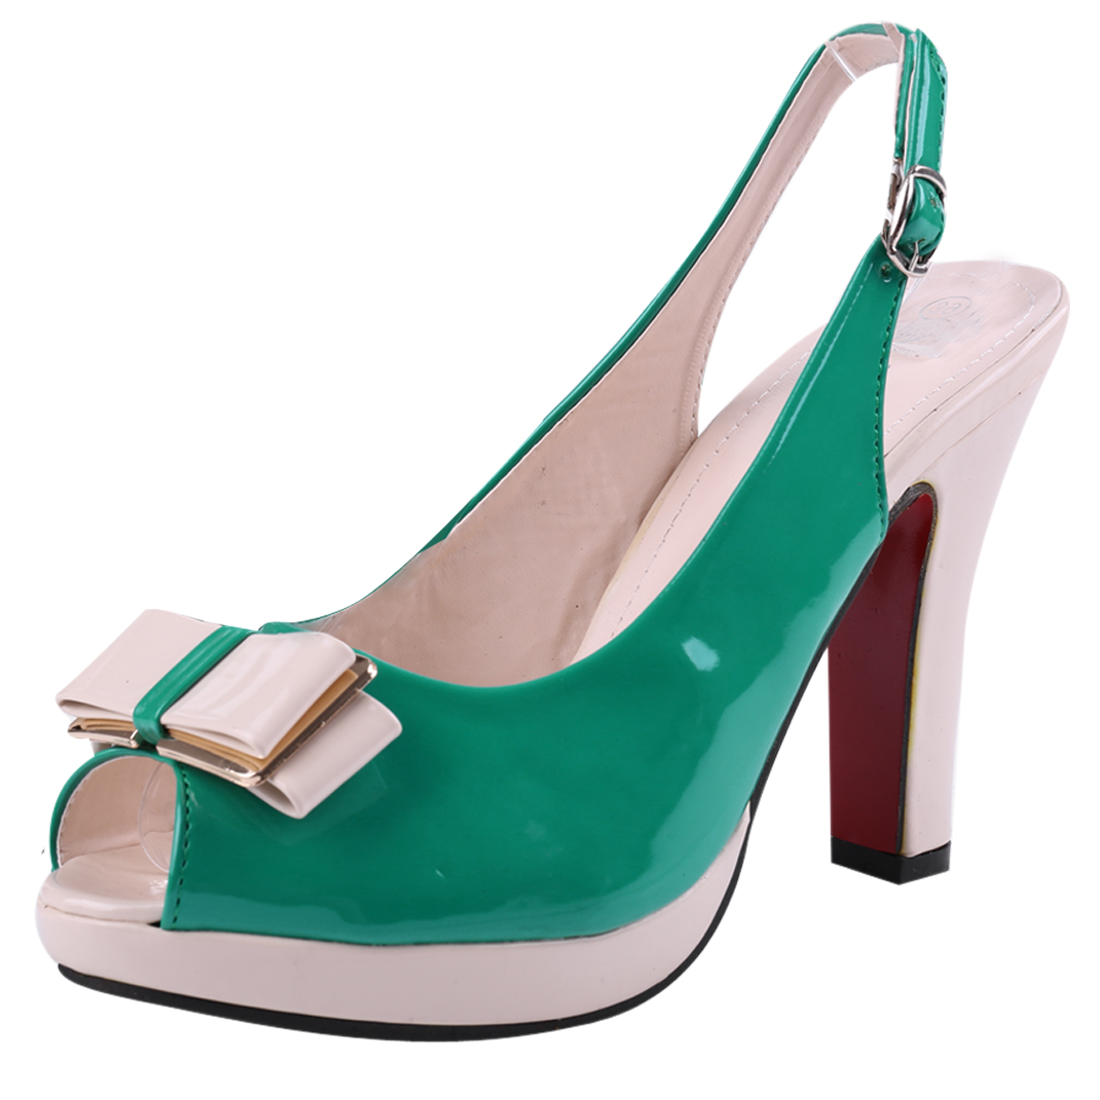 Women Buckle Back Color Blocking Platform Pumps Green Beige US 6.5